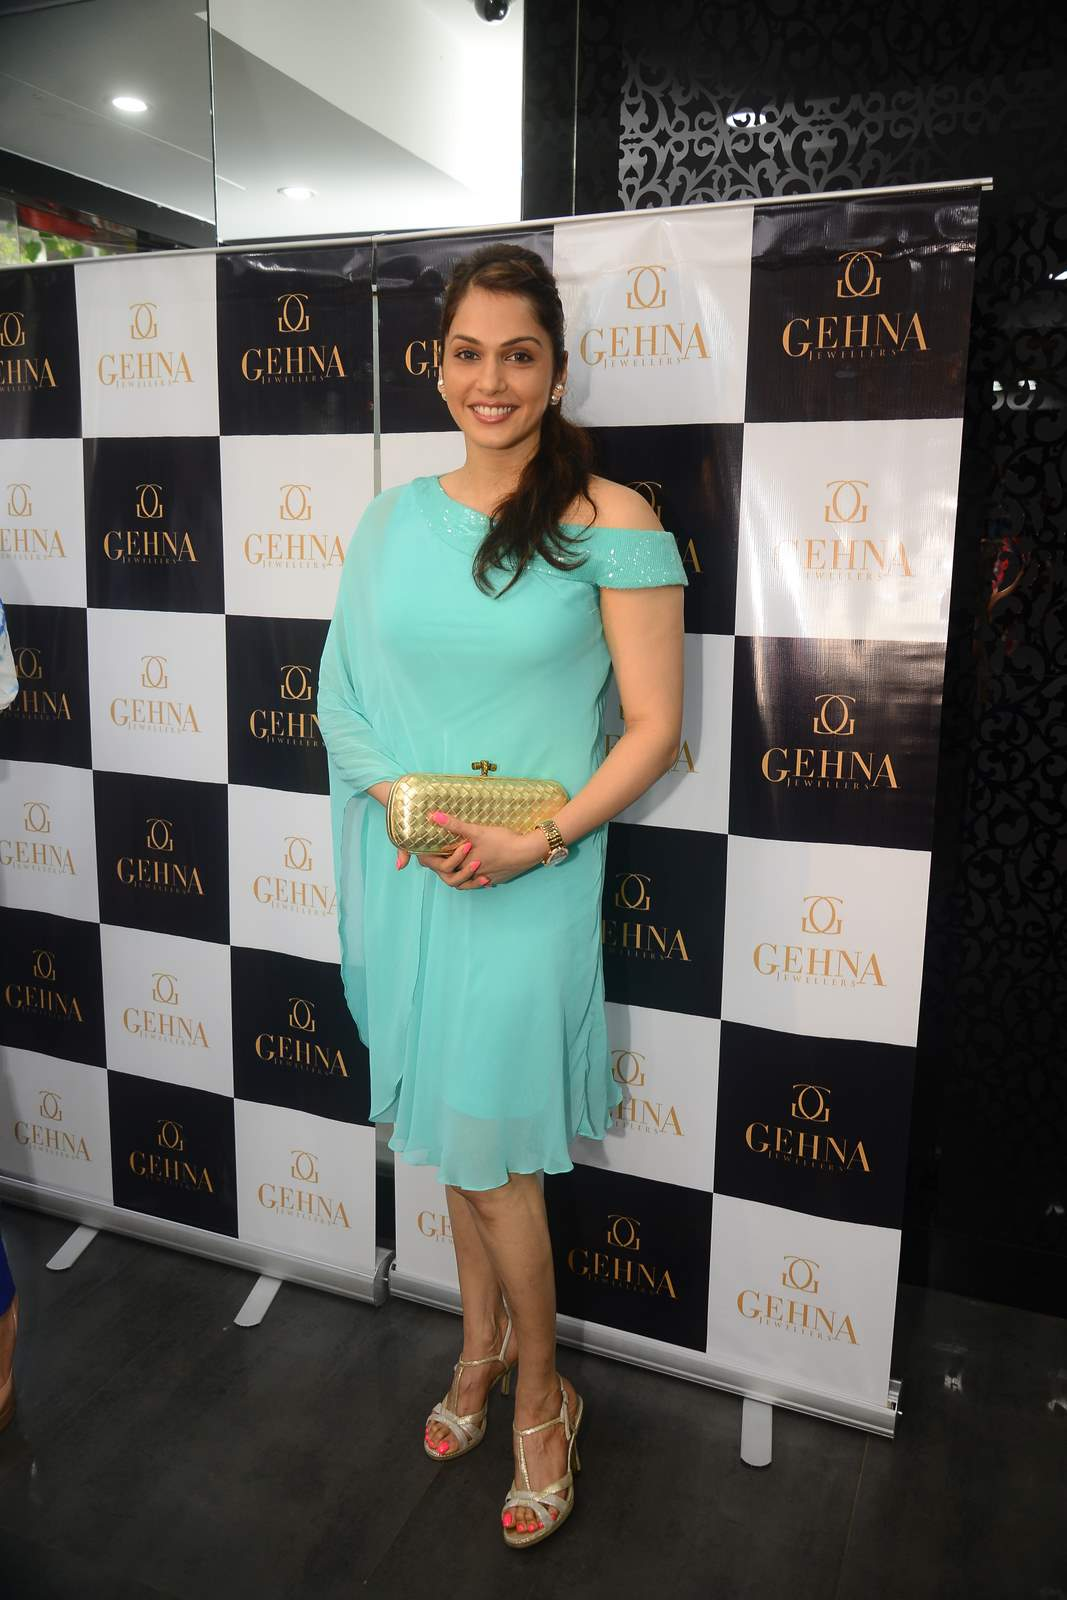 Sridevi at Gahna Jewellery Event in Mumbai